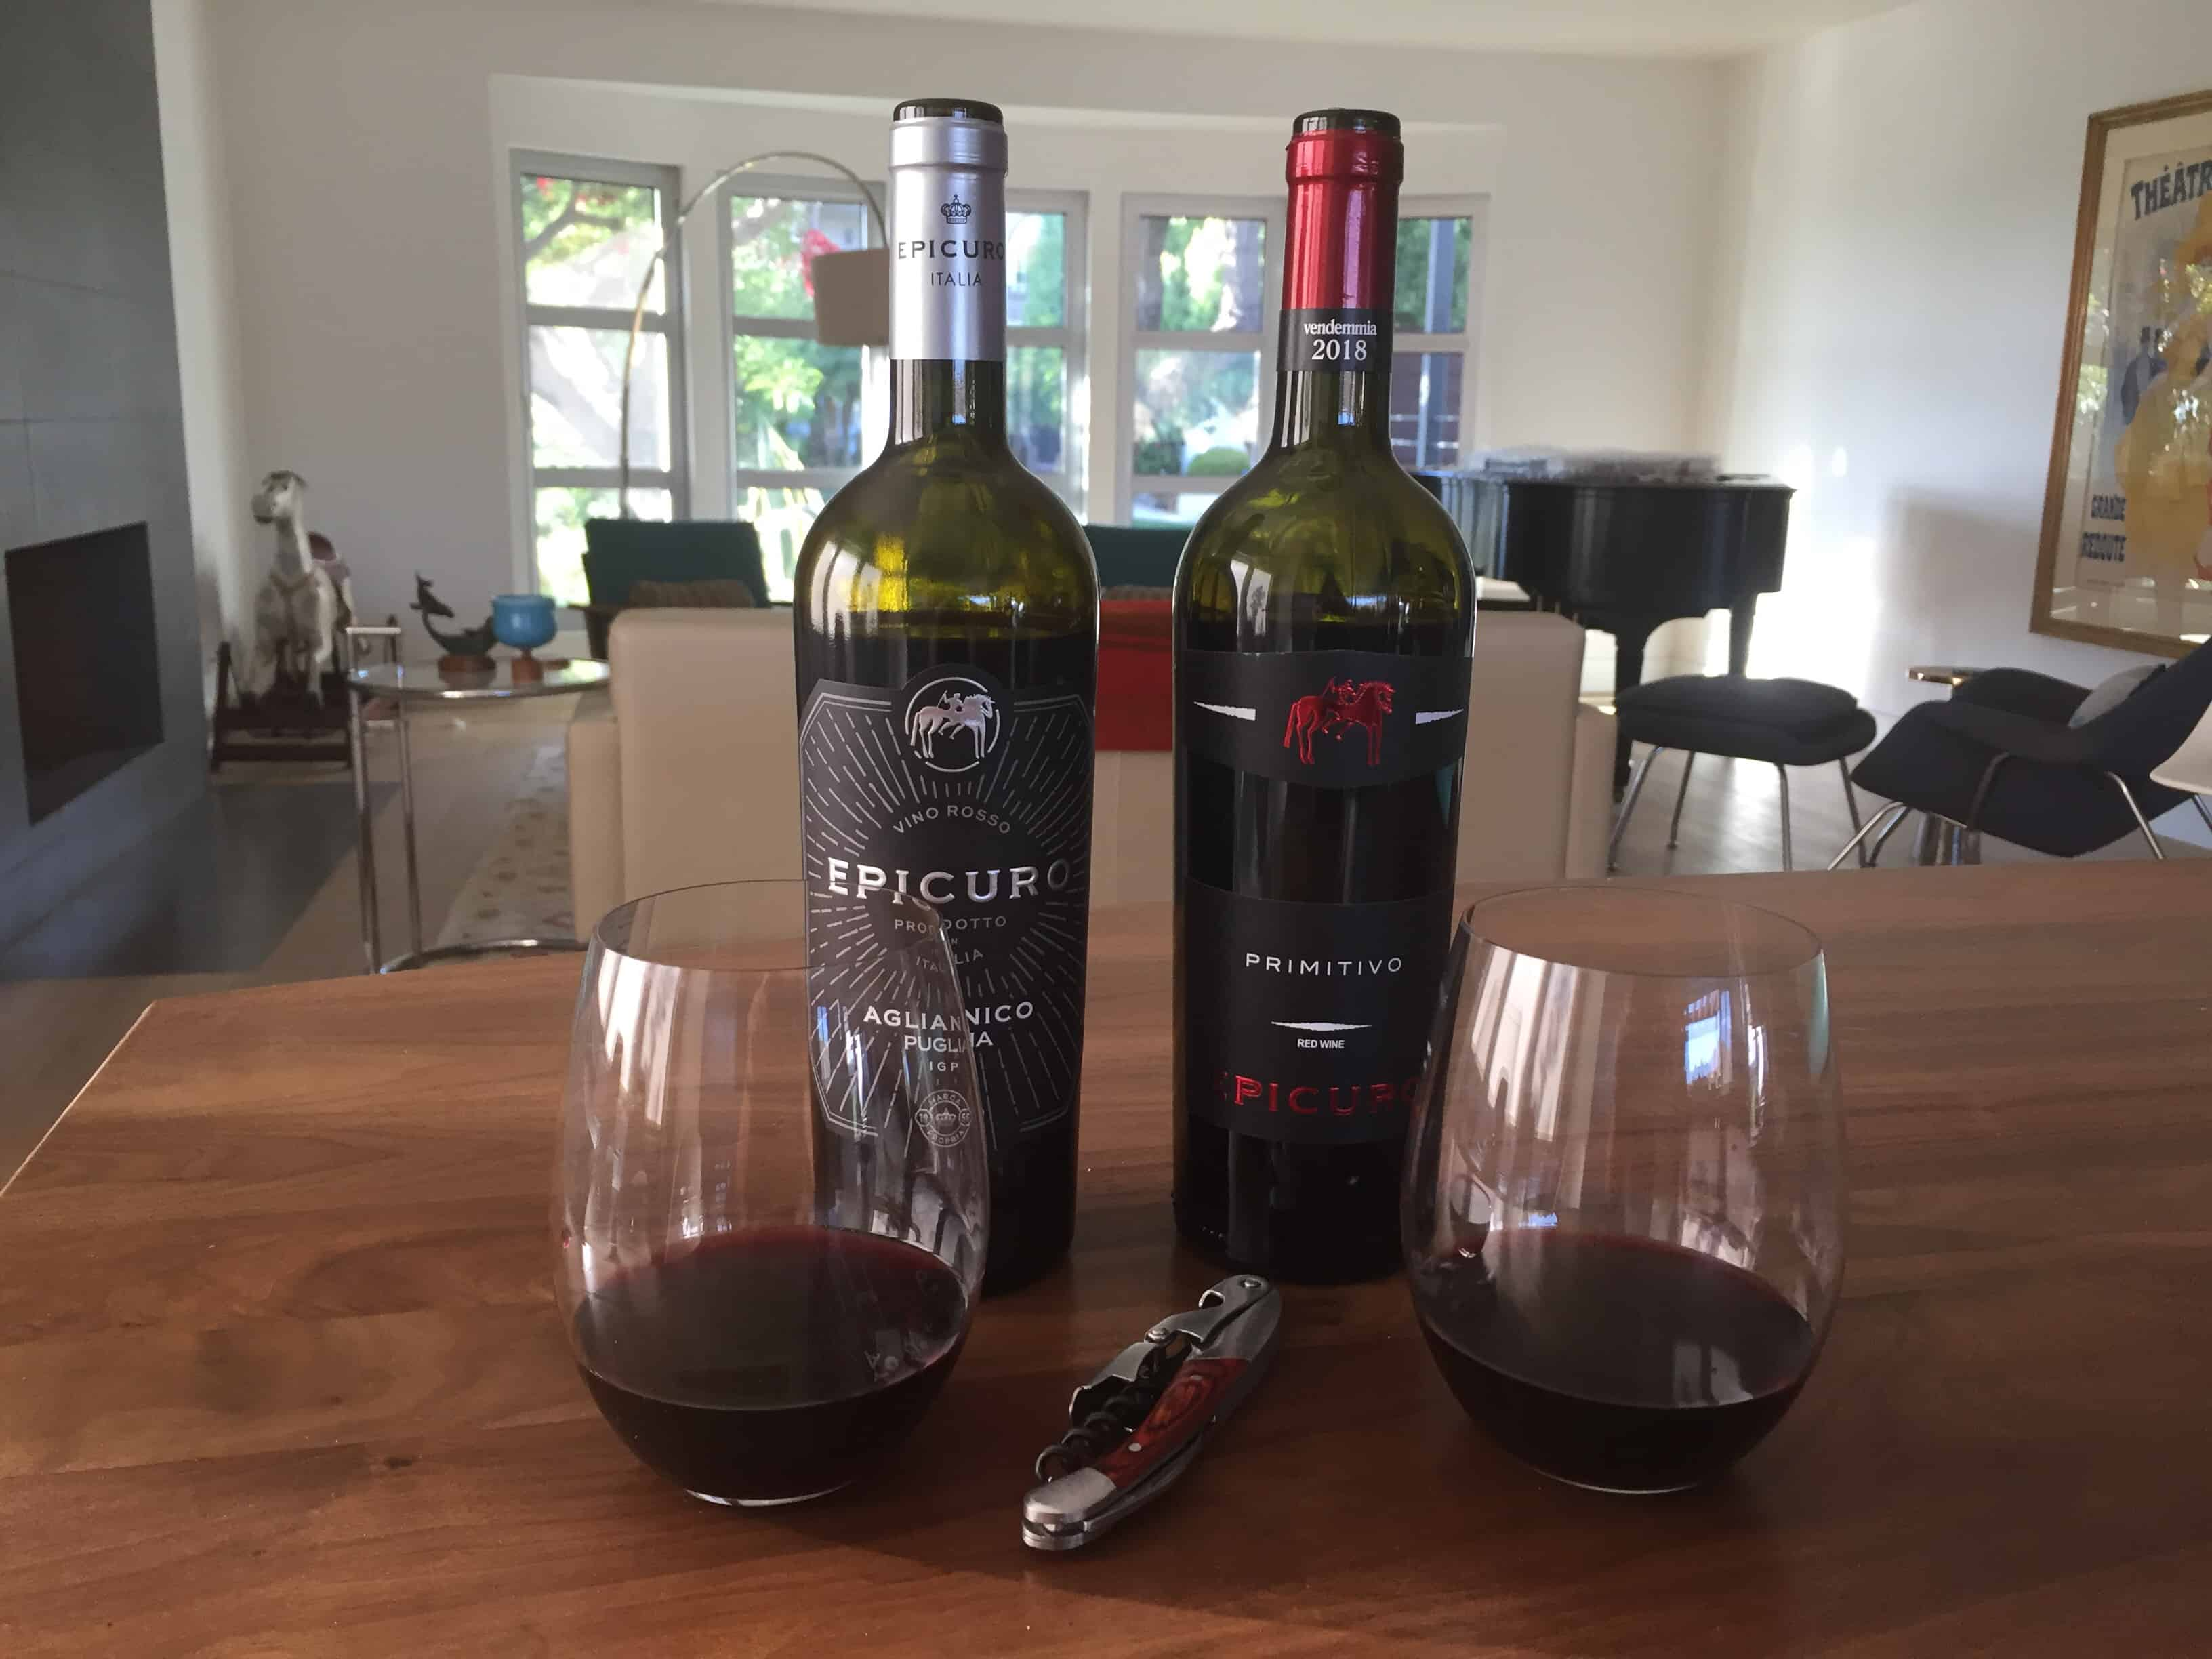 Bottle and glass of Epicuro Aglianico and Primitivo from Trader Joe's. Both pack a lot of fruity goodness for just $4.99.